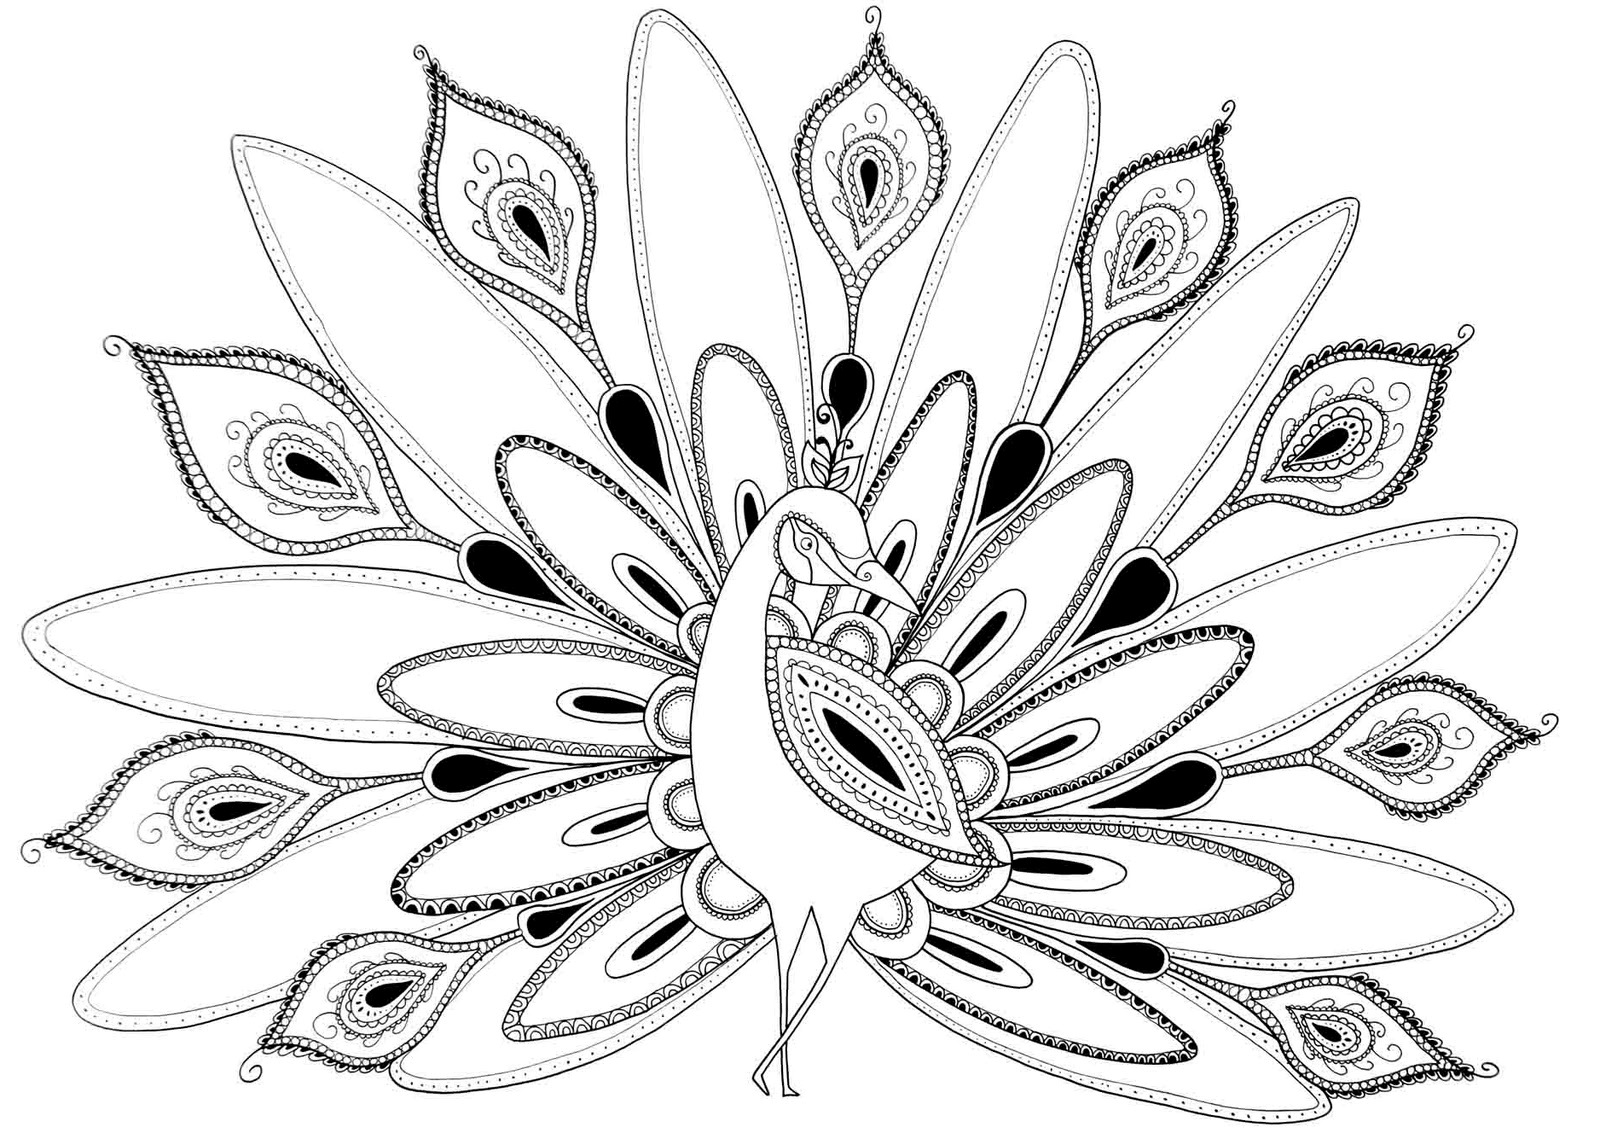 easy cute peacock coloring pages how to draw a peacock posted by felicity french at 1359 peacock cute coloring pages easy